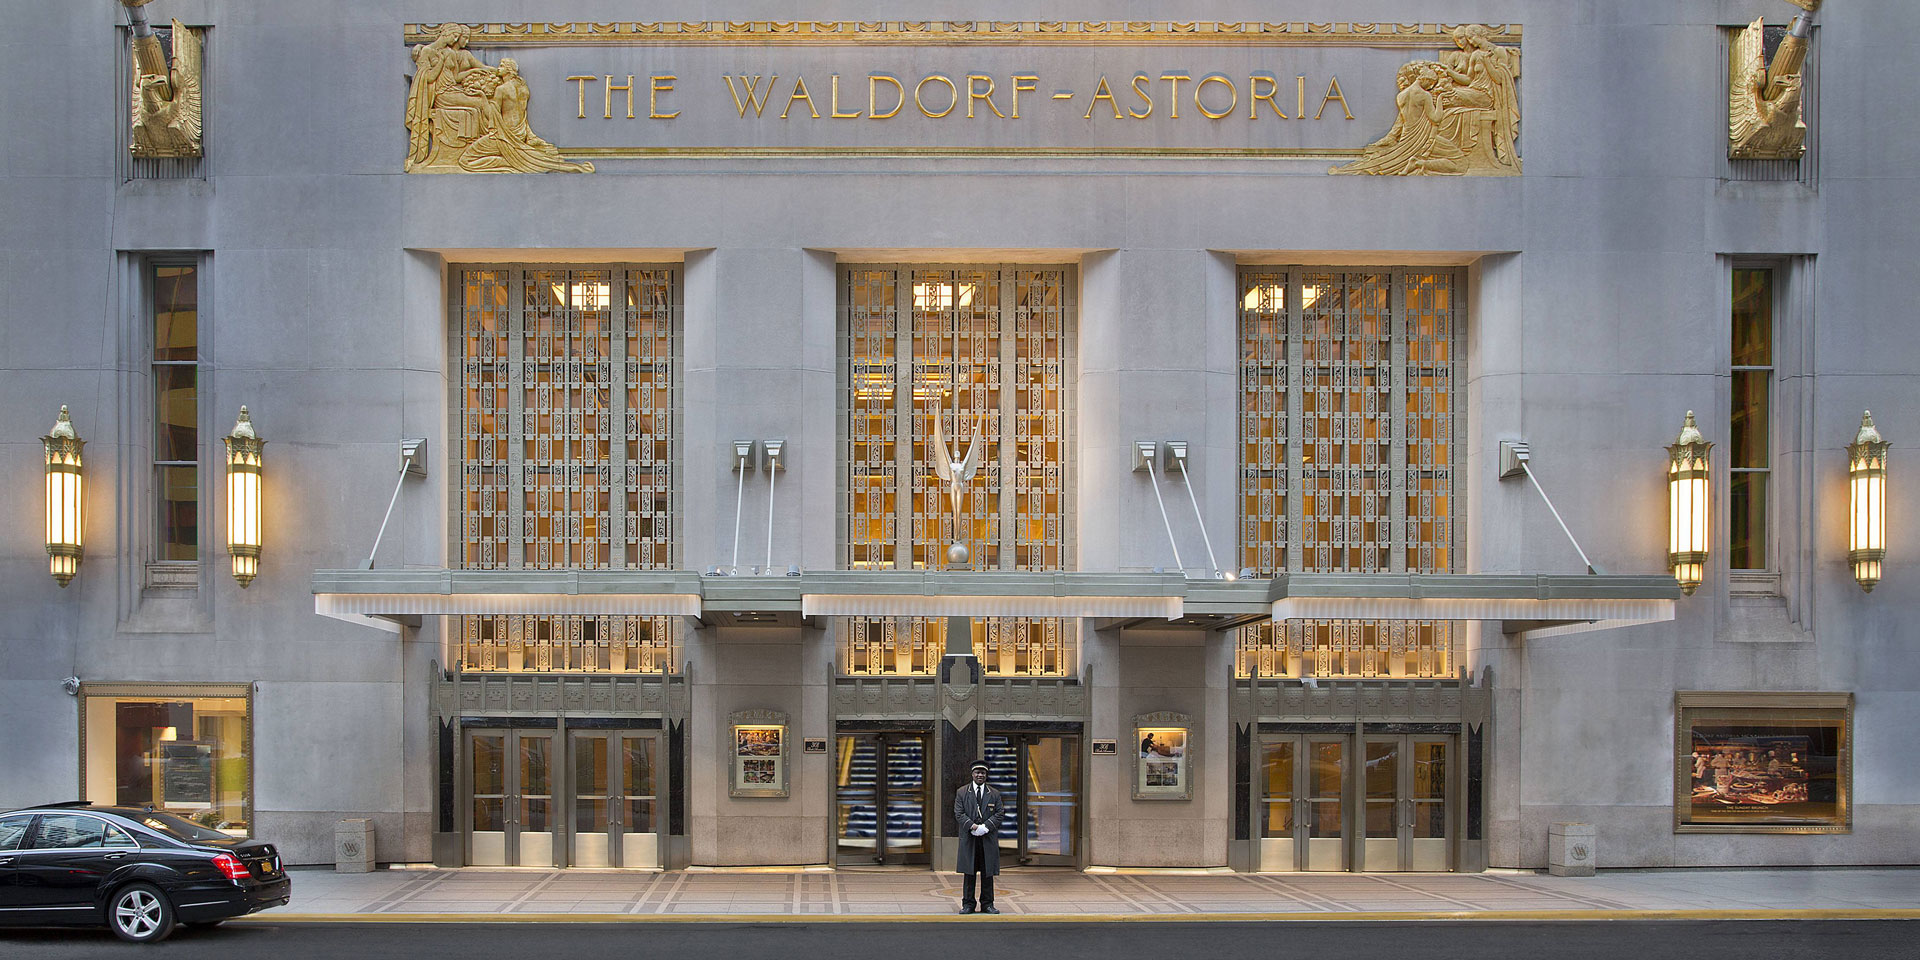 Anbang Insurance Co. works to renovate Manhattan's famous Waldorf Astoria